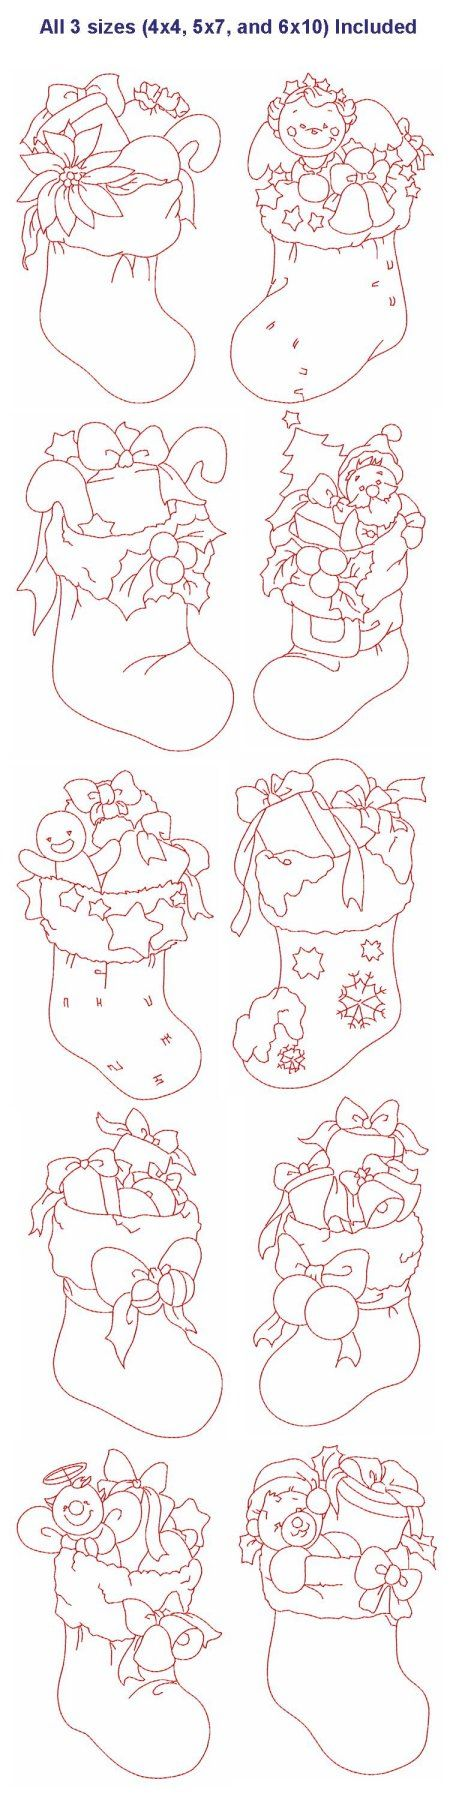 FREE DOWNLOAD. Although it's meant for embroidery; it would be great to paint on wood, canvas, cards etc.